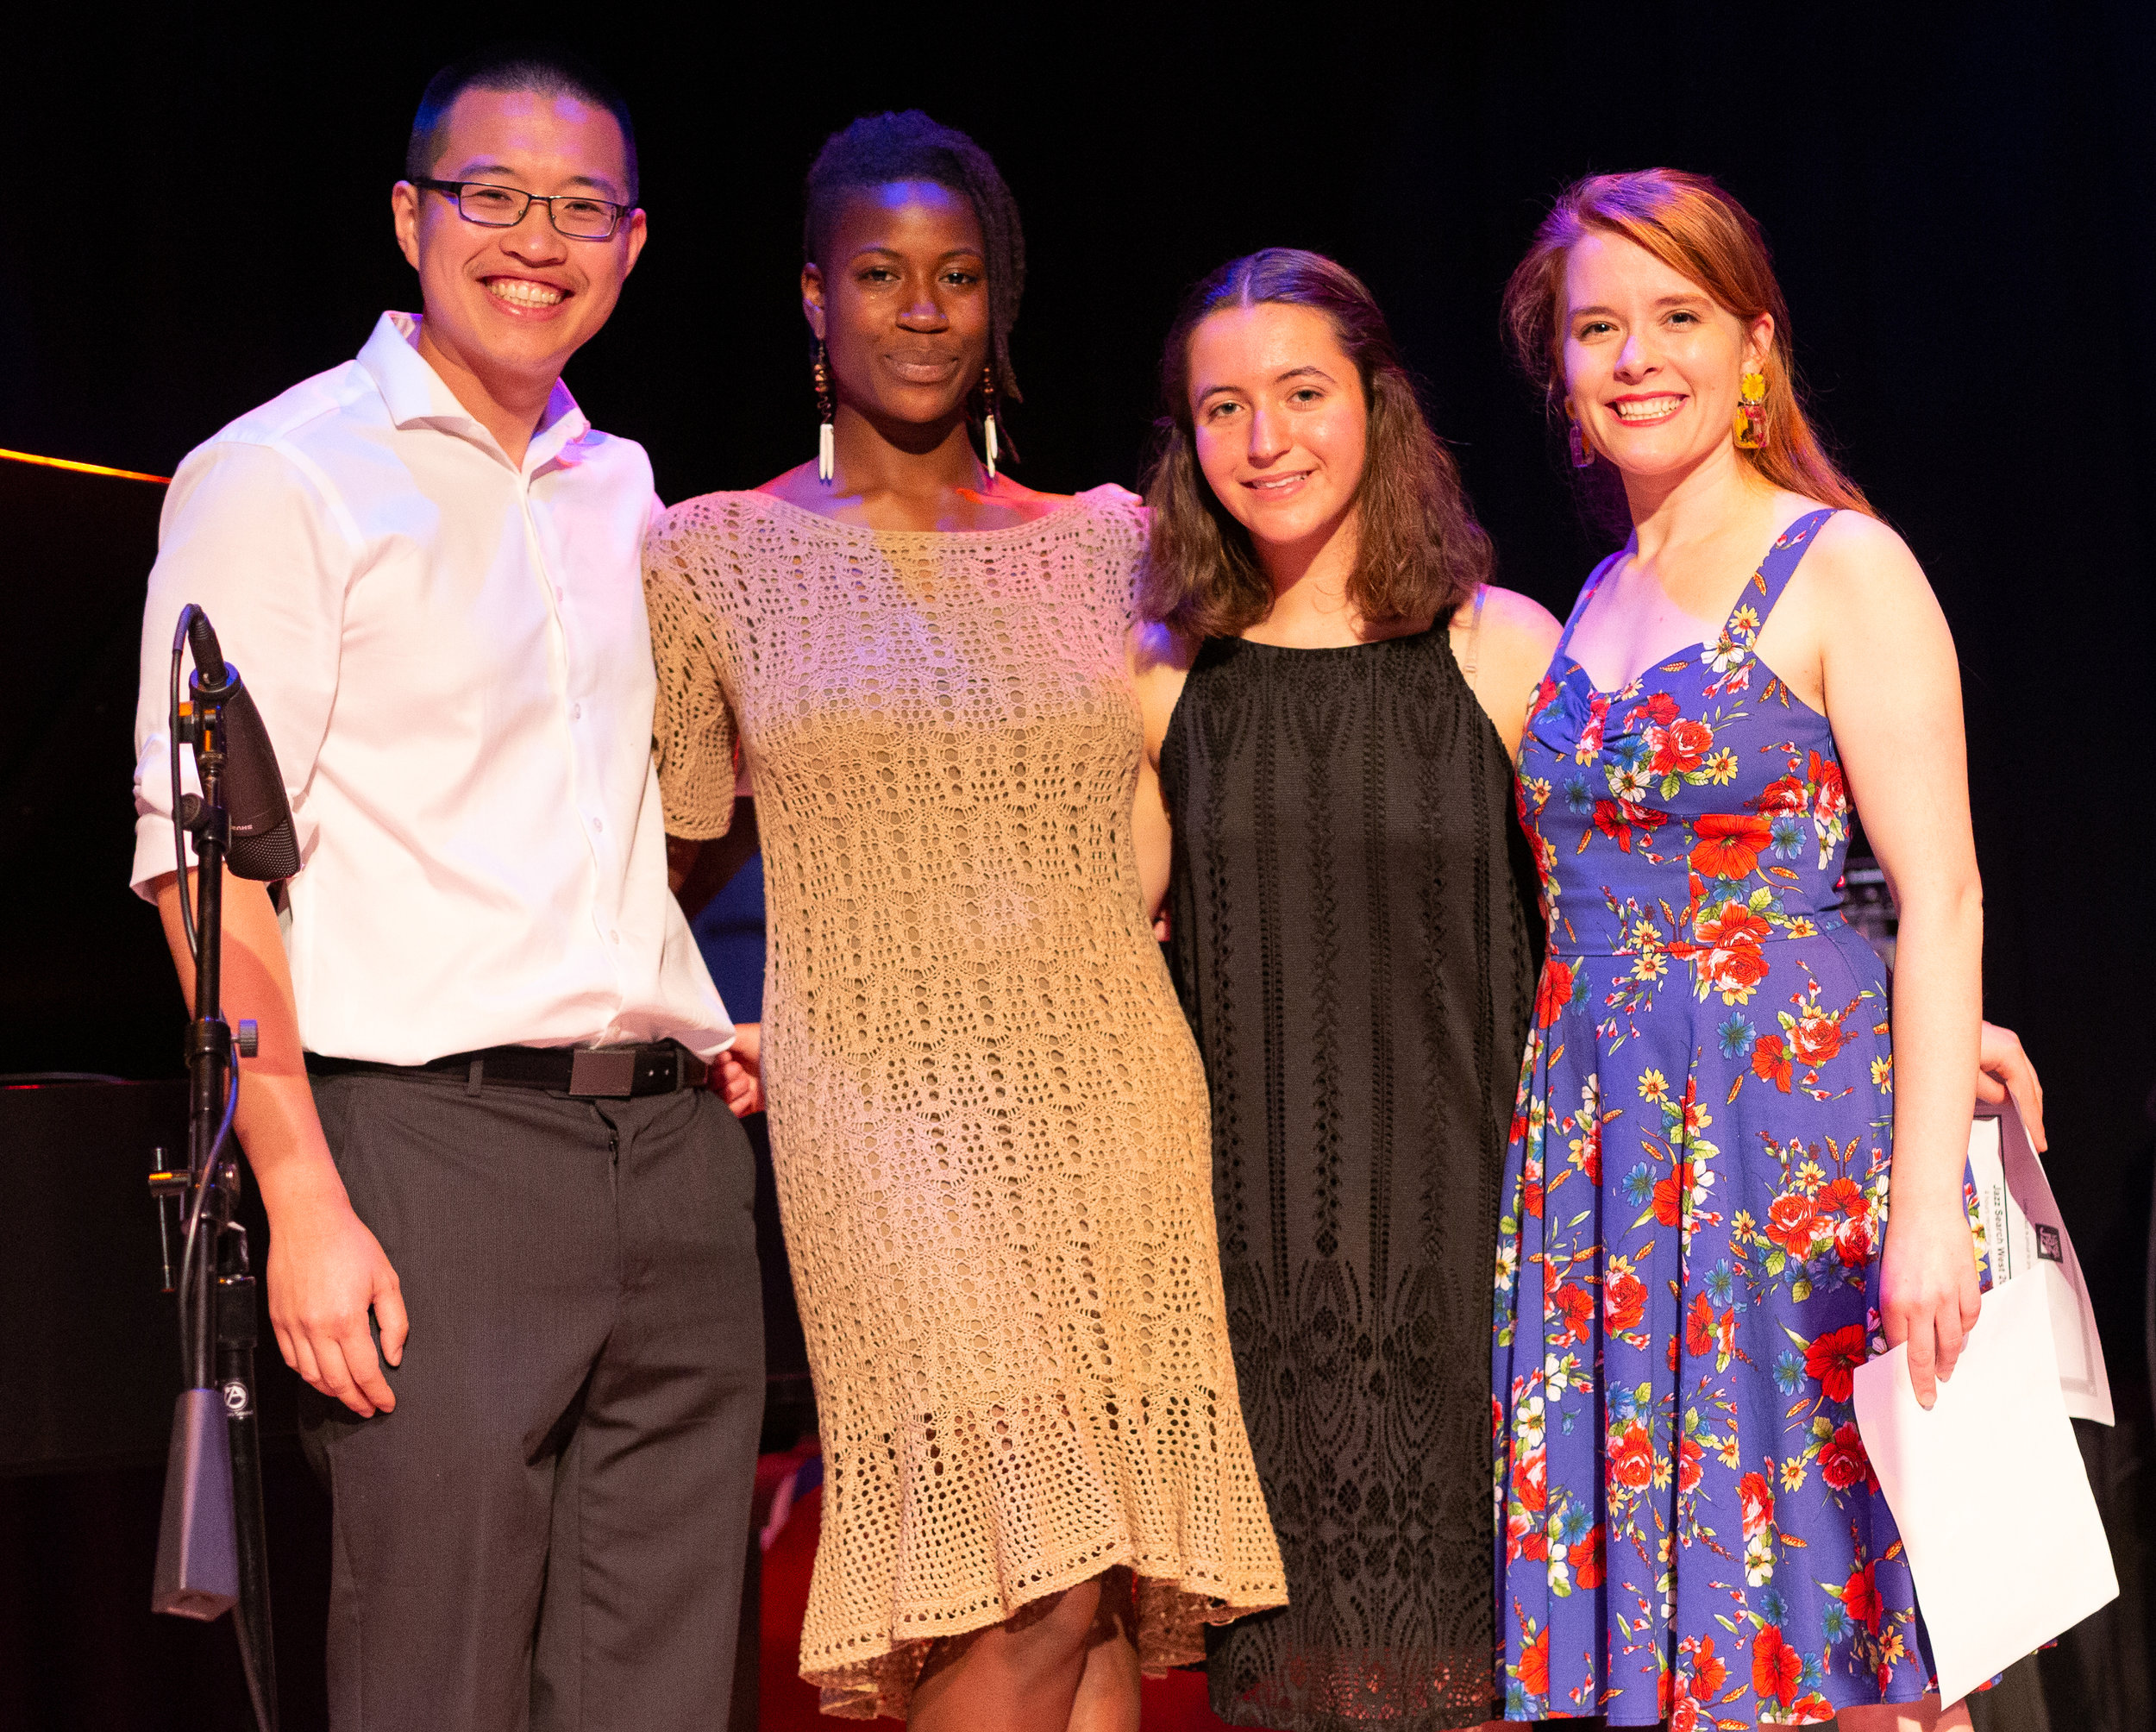 (from left to right) Charles Chen, Cristen Spencer, Hannah Mayer and Rebecca Holtz